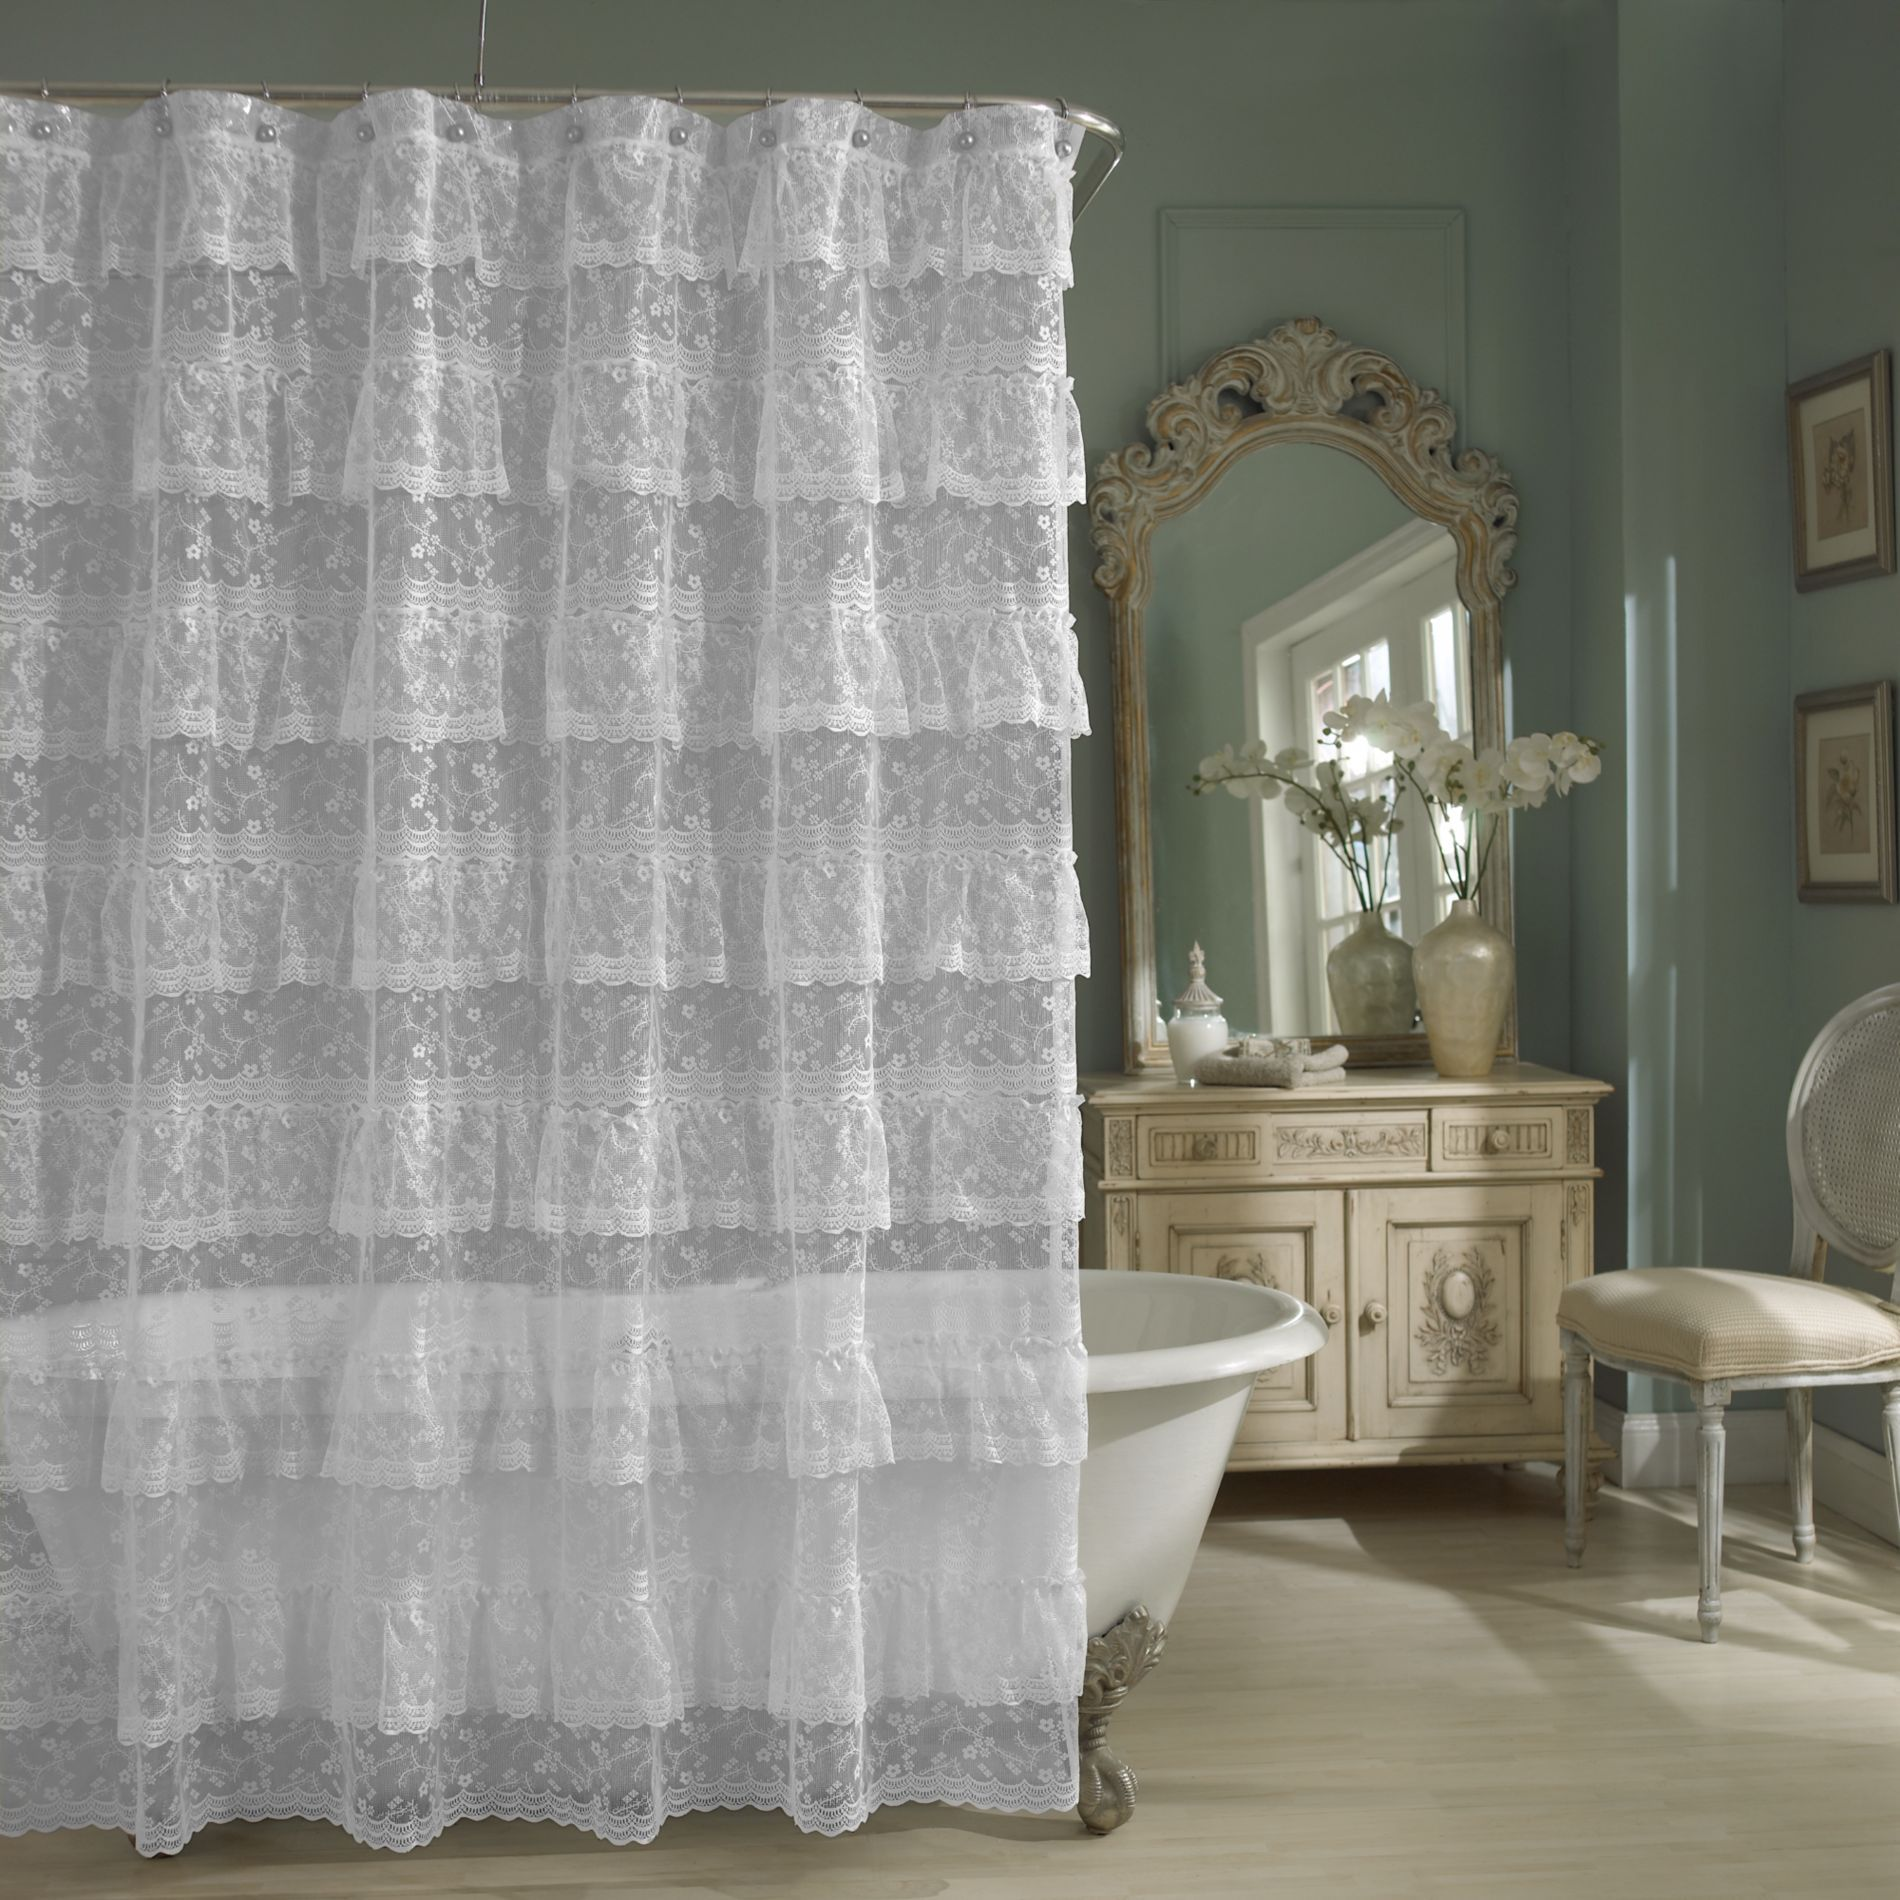 Priscilla lace shower curtain in white bedbathandbeyond